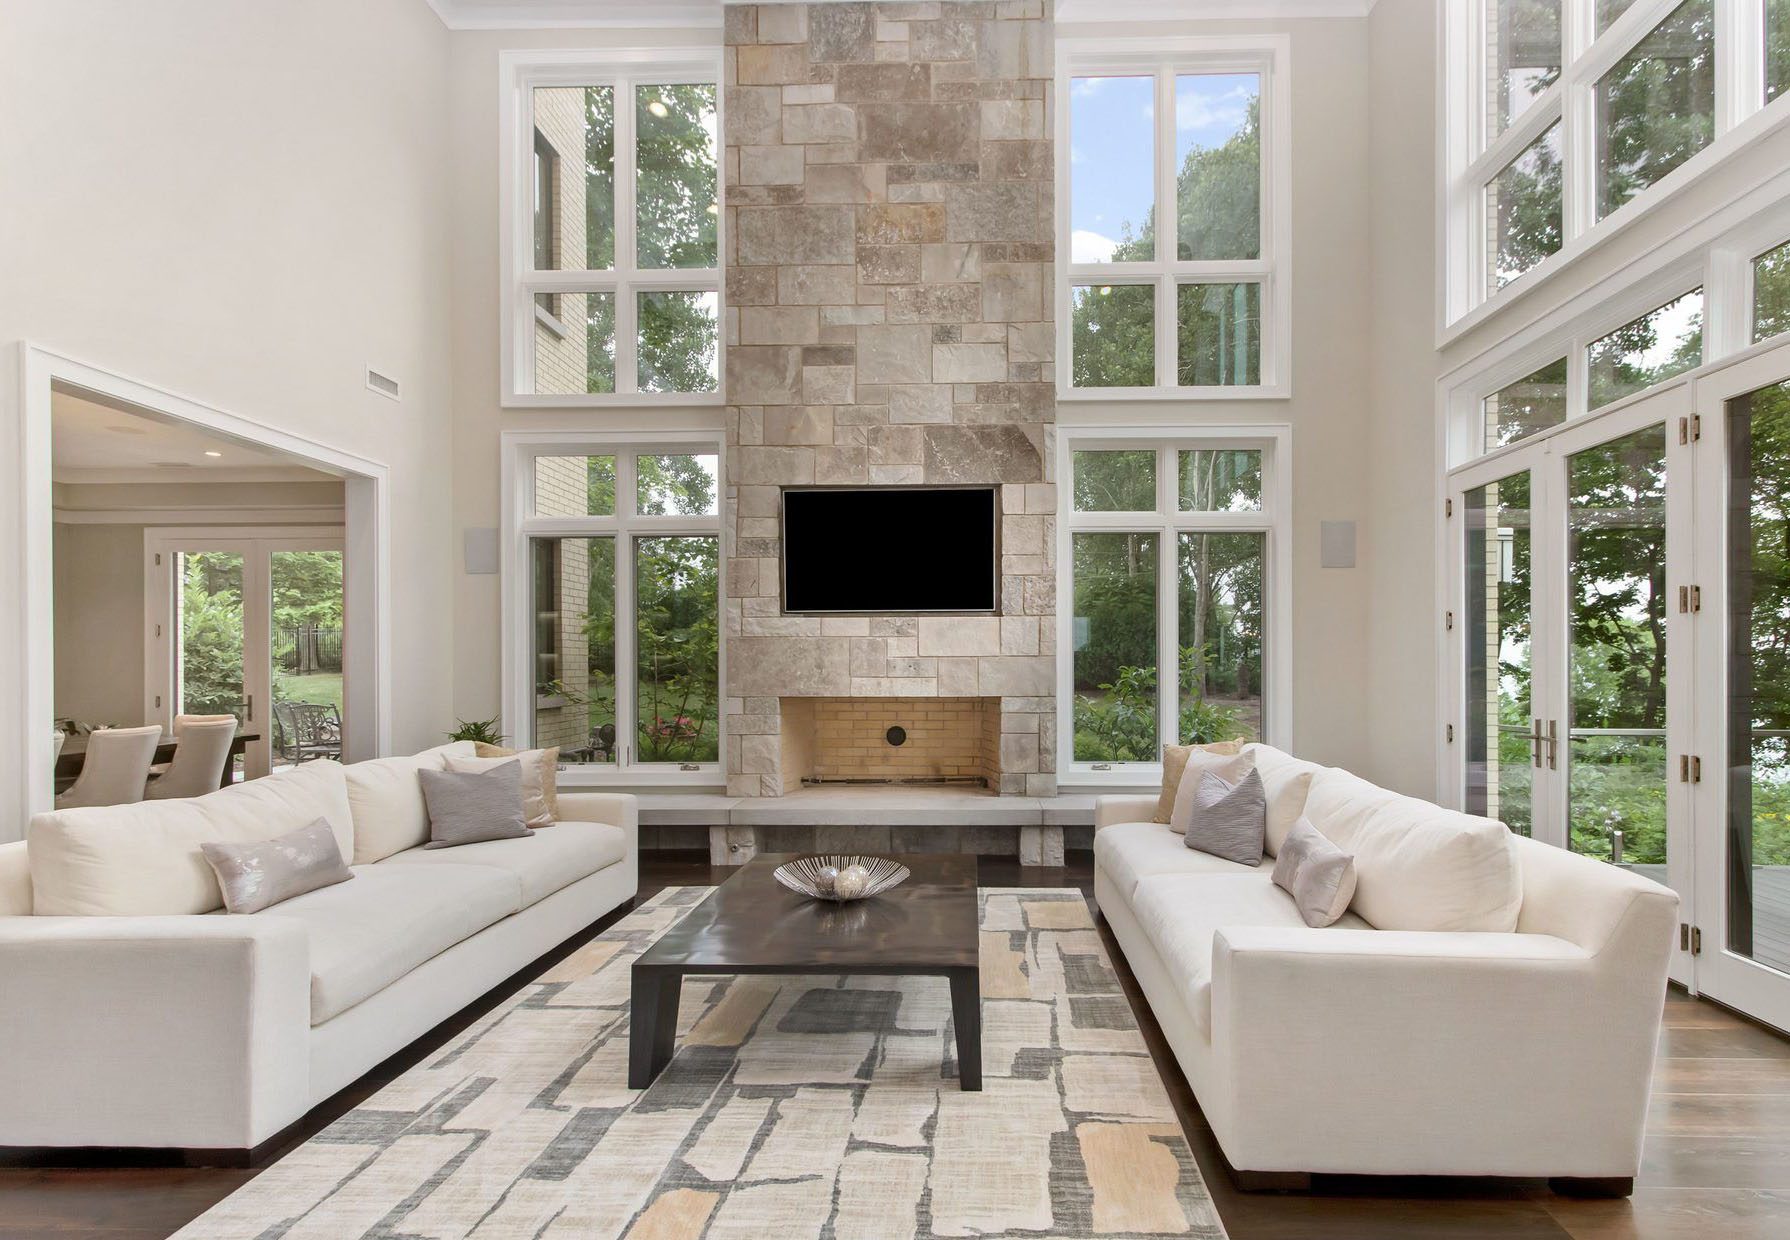 2 story angular stone fireplace surround with tinted grout creates a harmonious color scheme. fireplace design ideas.